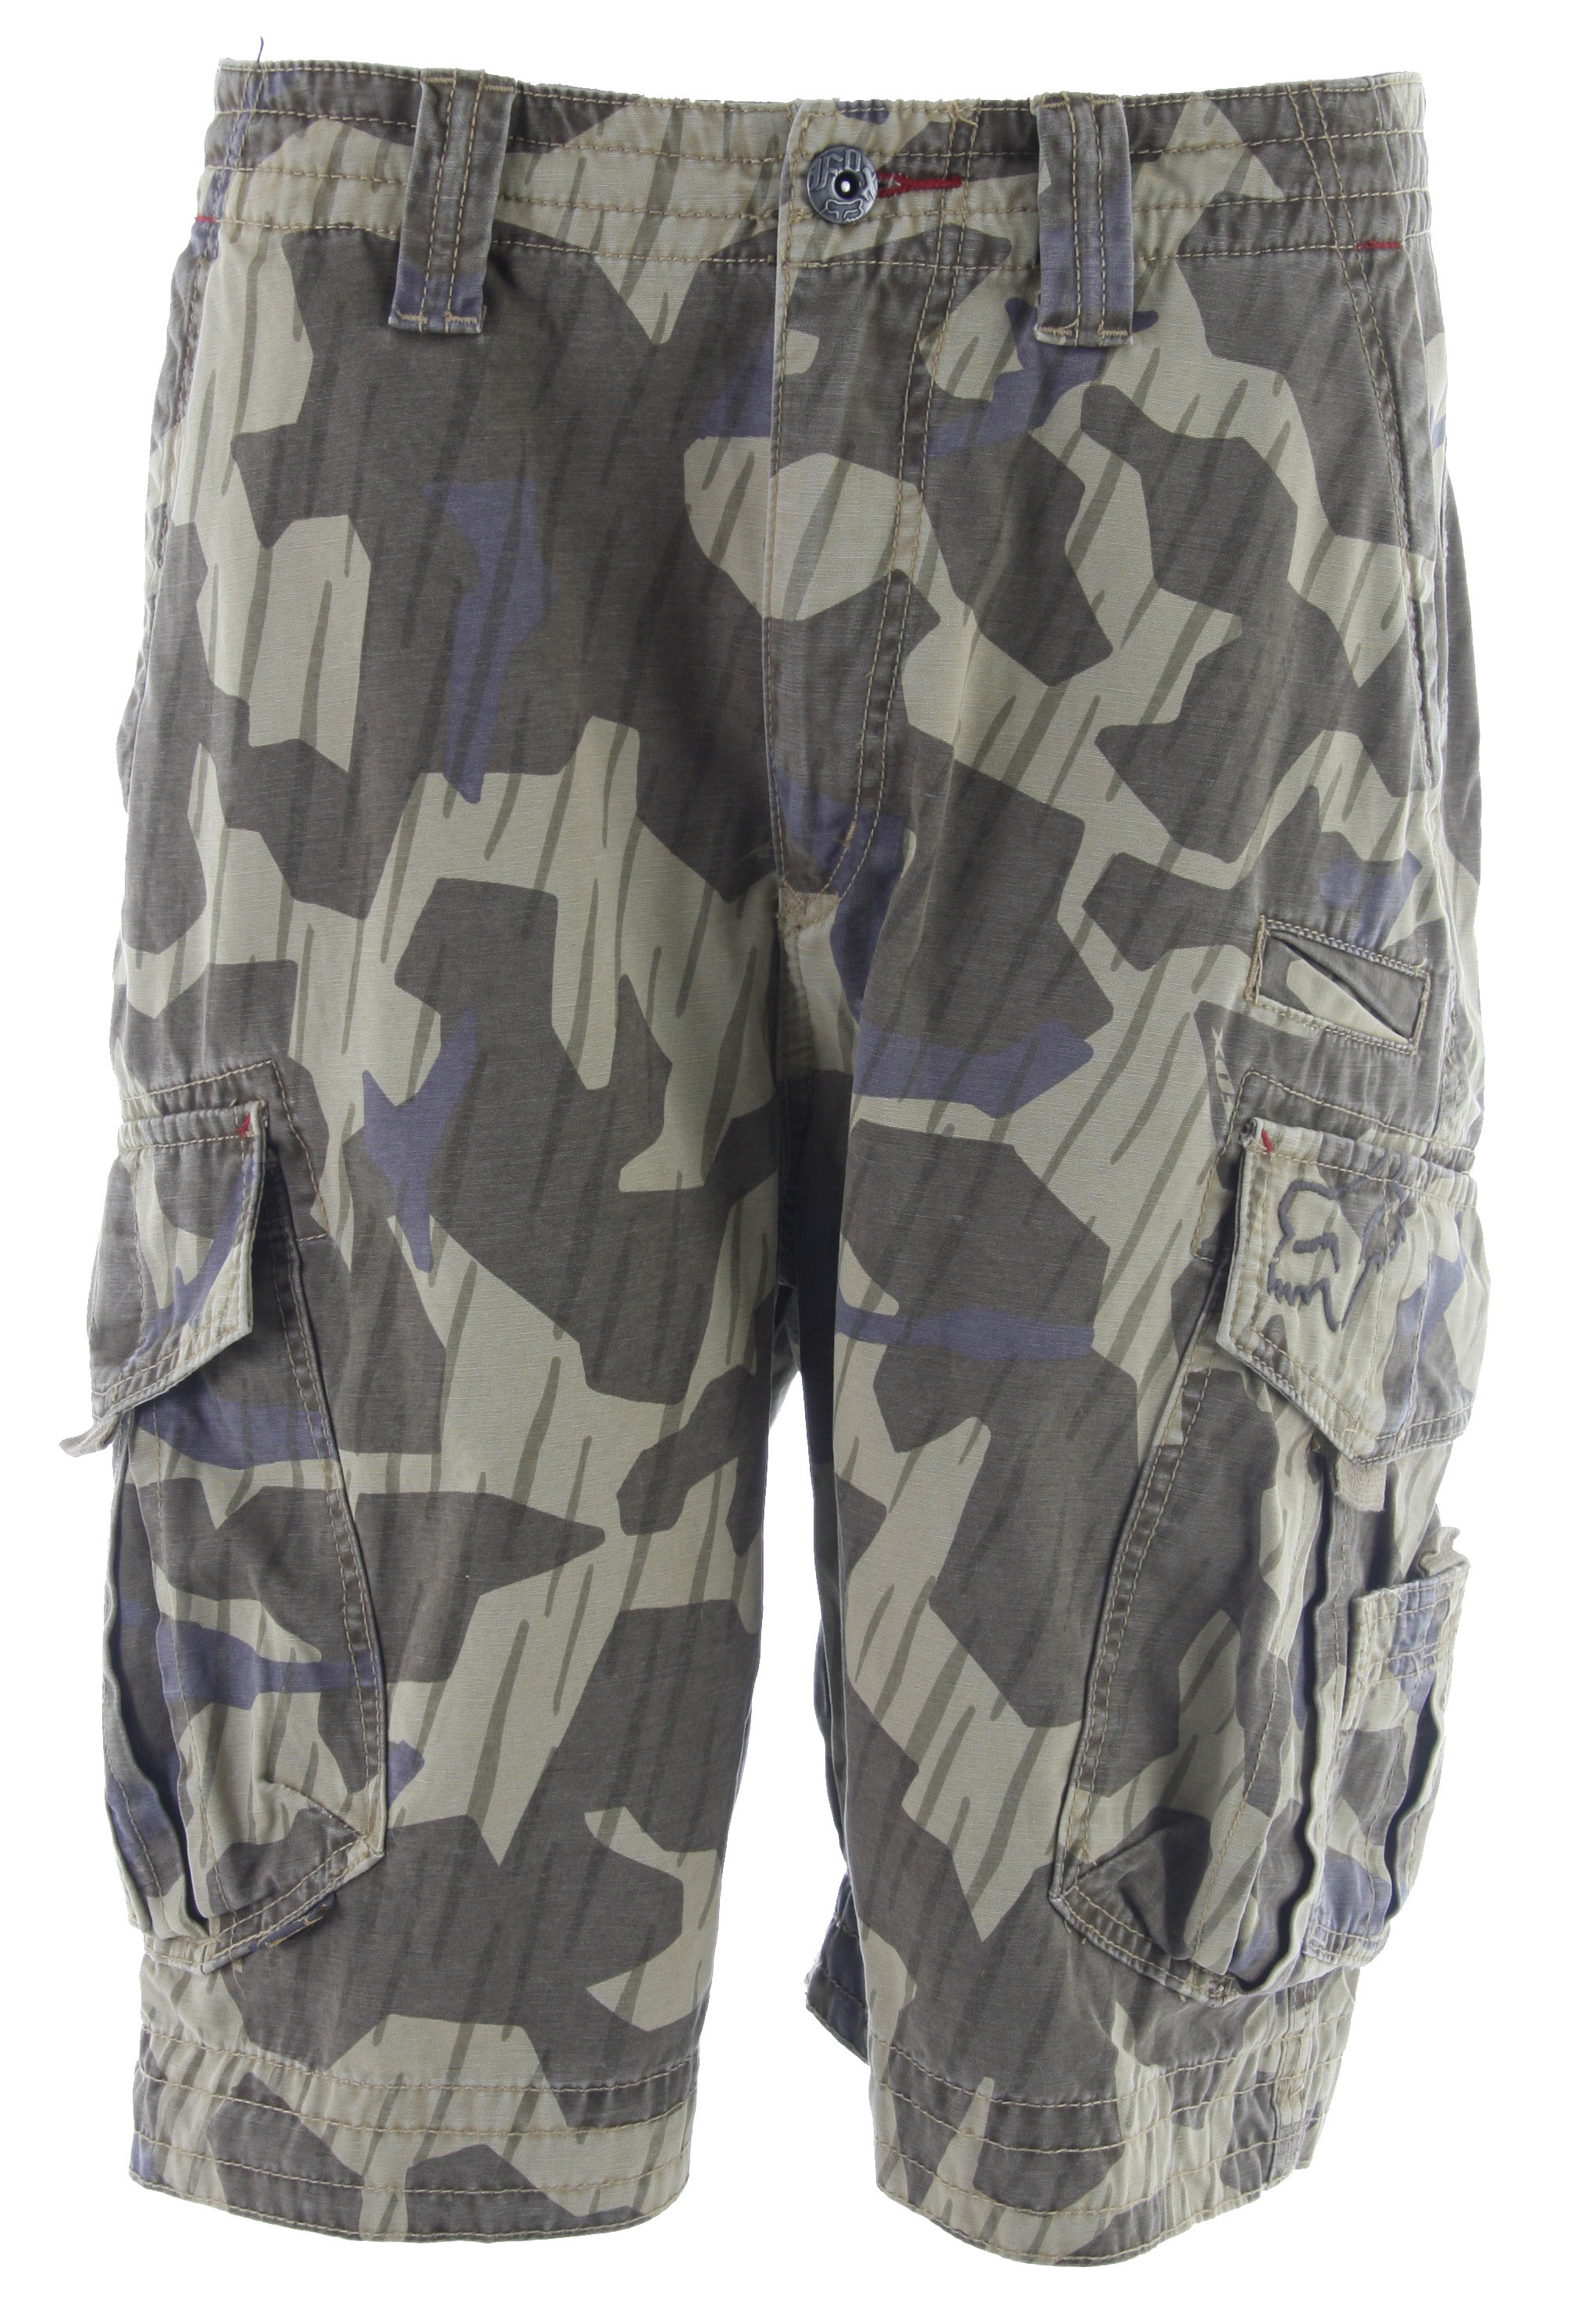 "Motorsports Here is a must have staple in your summer wardrobe collection. The Fox Slambozo Cargo Shorts is made with fine material, 100% cotton. This camo designed shorts features front pockets with back velcro pockets. And with its zipper fly, these easy to wear shorts are ideal for everyday wear. Rock these camo shorts with a simple T-shirt and you're all set. Hit the beach or the local park and be sure to feel comfortable all day long.Key Features of the Fox Slambozo Cargo Shorts: Carry your cargo in these Fox shorts Front pockets with side and back Velcro pockets Logo button waist and zip fly Embroidered logo crest on back side 100% Cotton 23"" outseam - $53.95"